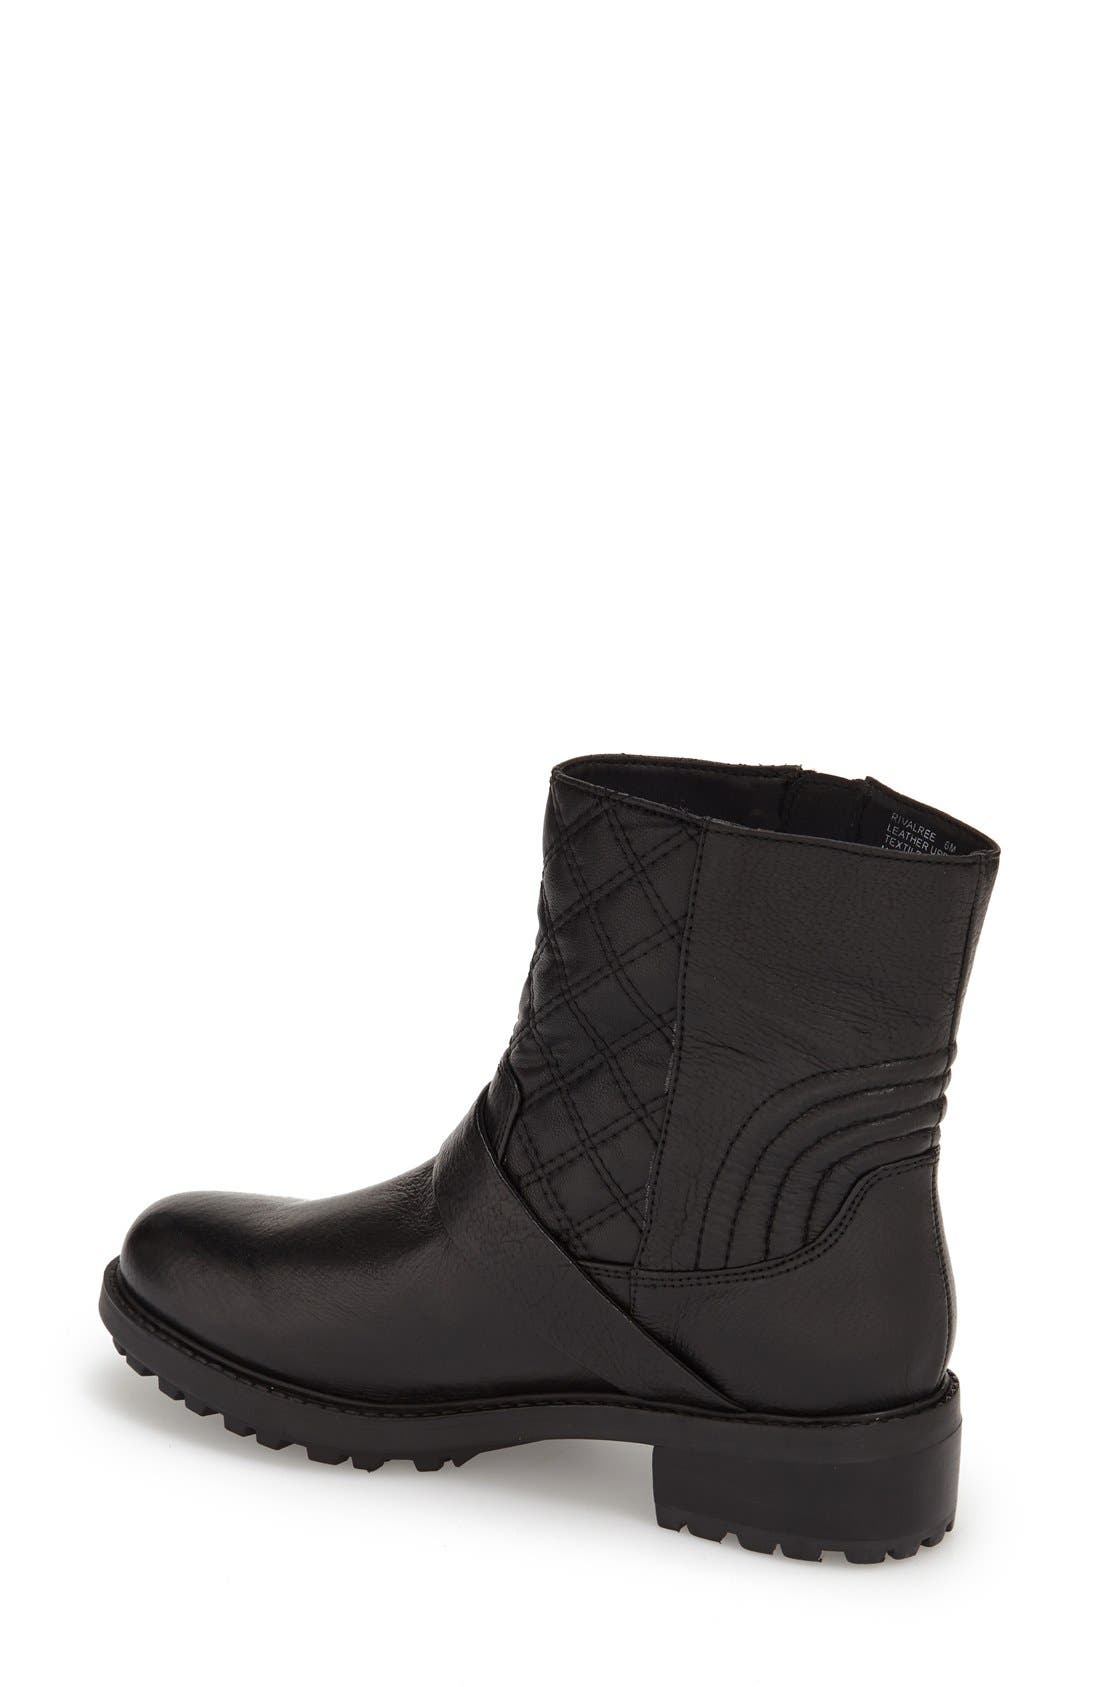 Alternate Image 2  - Steve Madden 'Rivalree' Moto Boot (Women) (Special Purchase)